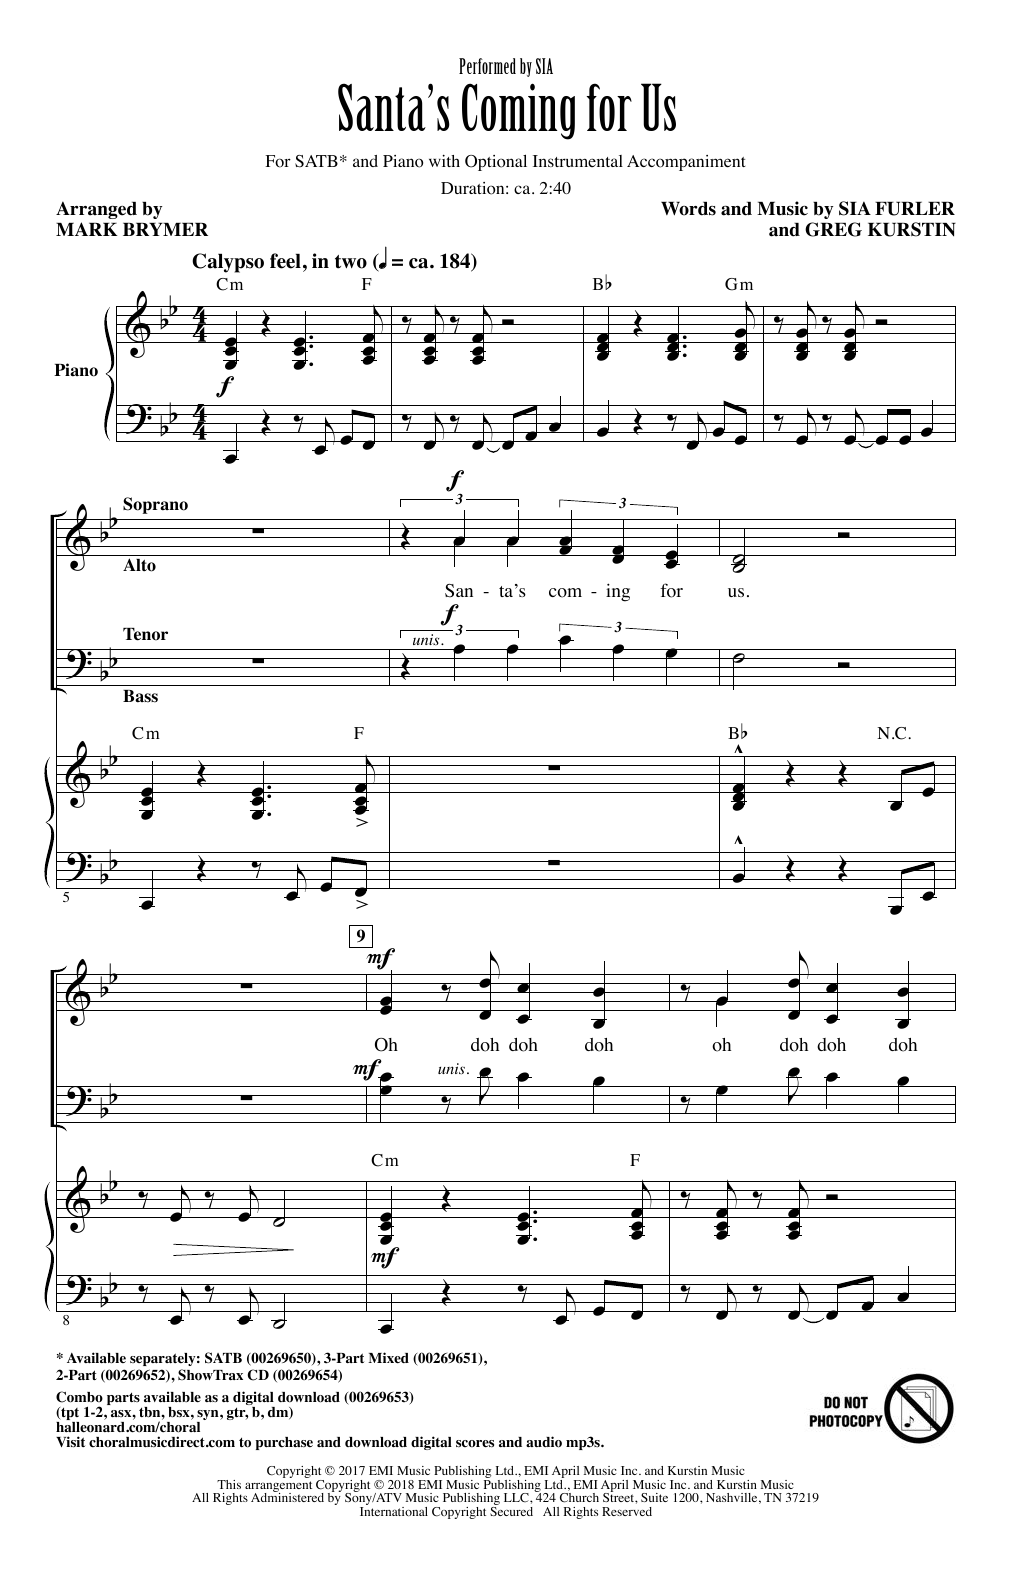 Santa's Coming For Us (arr. Mark Brymer) (SATB Choir)